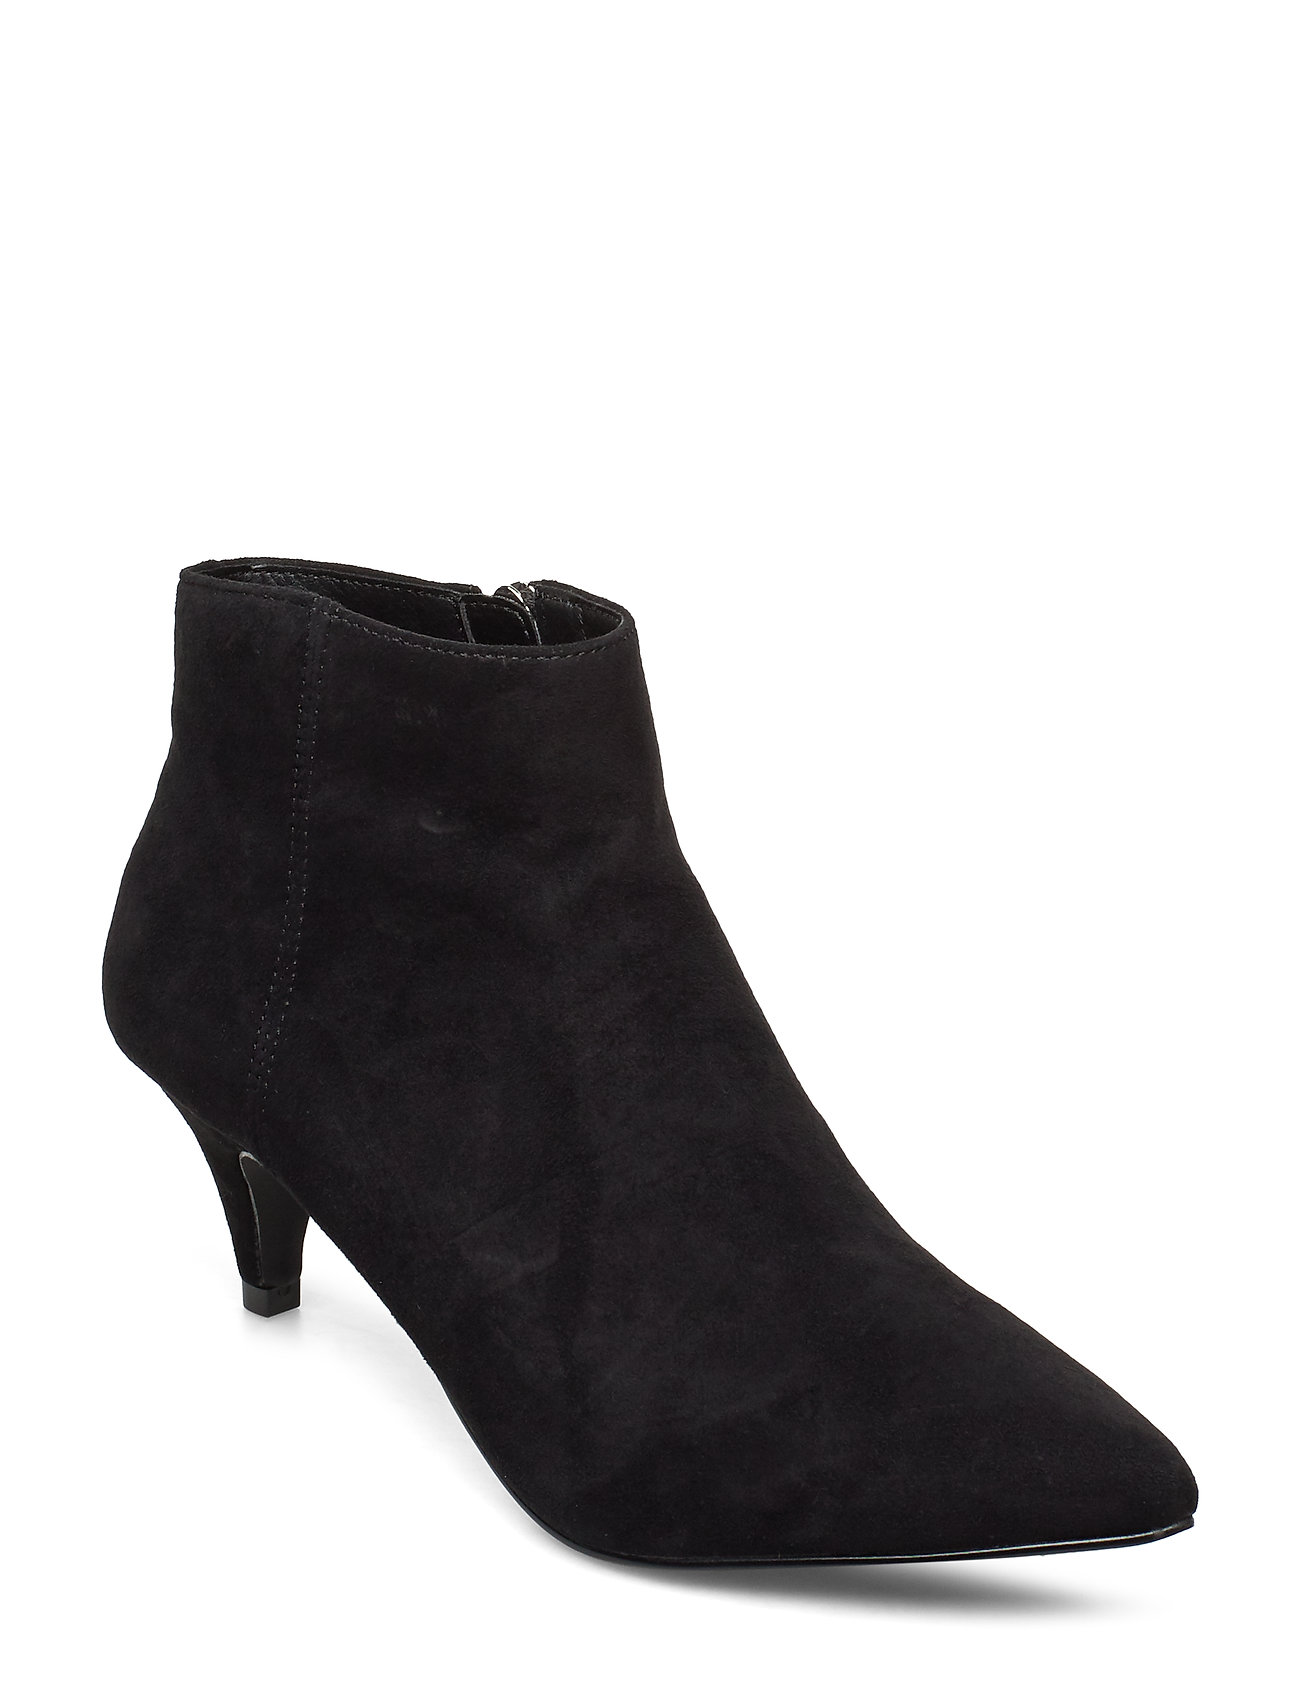 Image of Lucinda Bootie Shoes Boots Ankle Boots Ankle Boot - Heel Sort Steve Madden (3406217647)